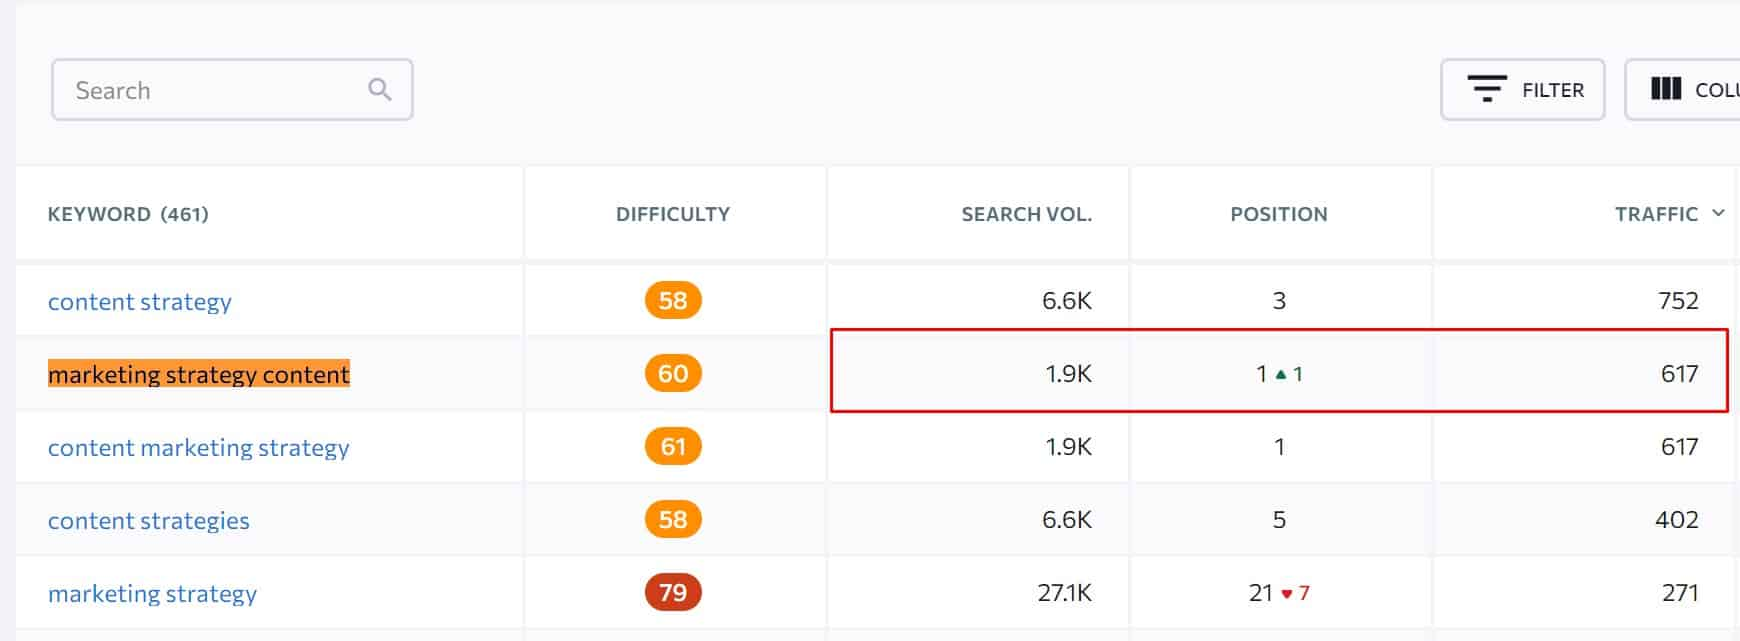 keyword with high traffic potential